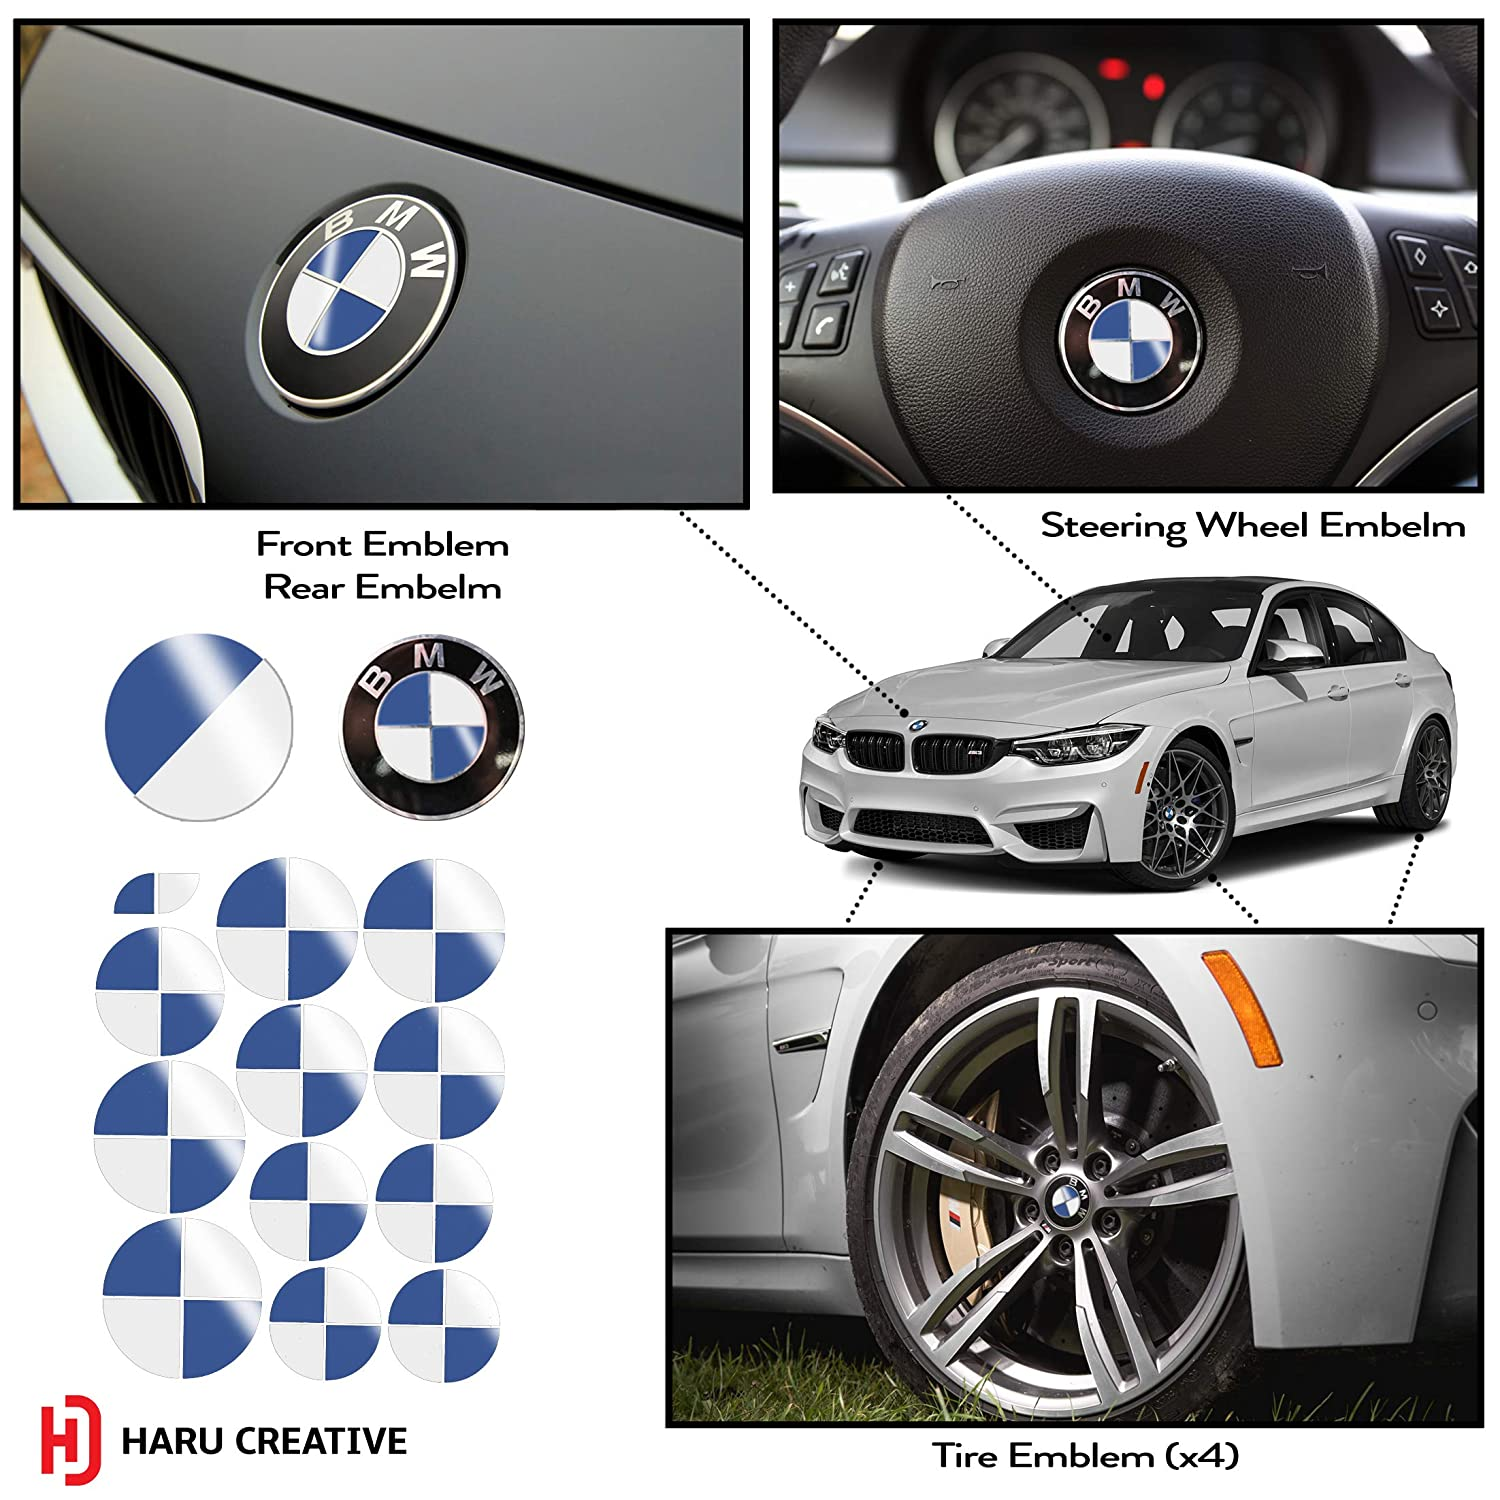 Vinyl Overlay Aftermarket Decal Sticker Compatible with and Fits All BMW Emblem Caps for Hood Trunk Wheel Fender - Gloss White and Blue Haru Creative Emblem Not Included